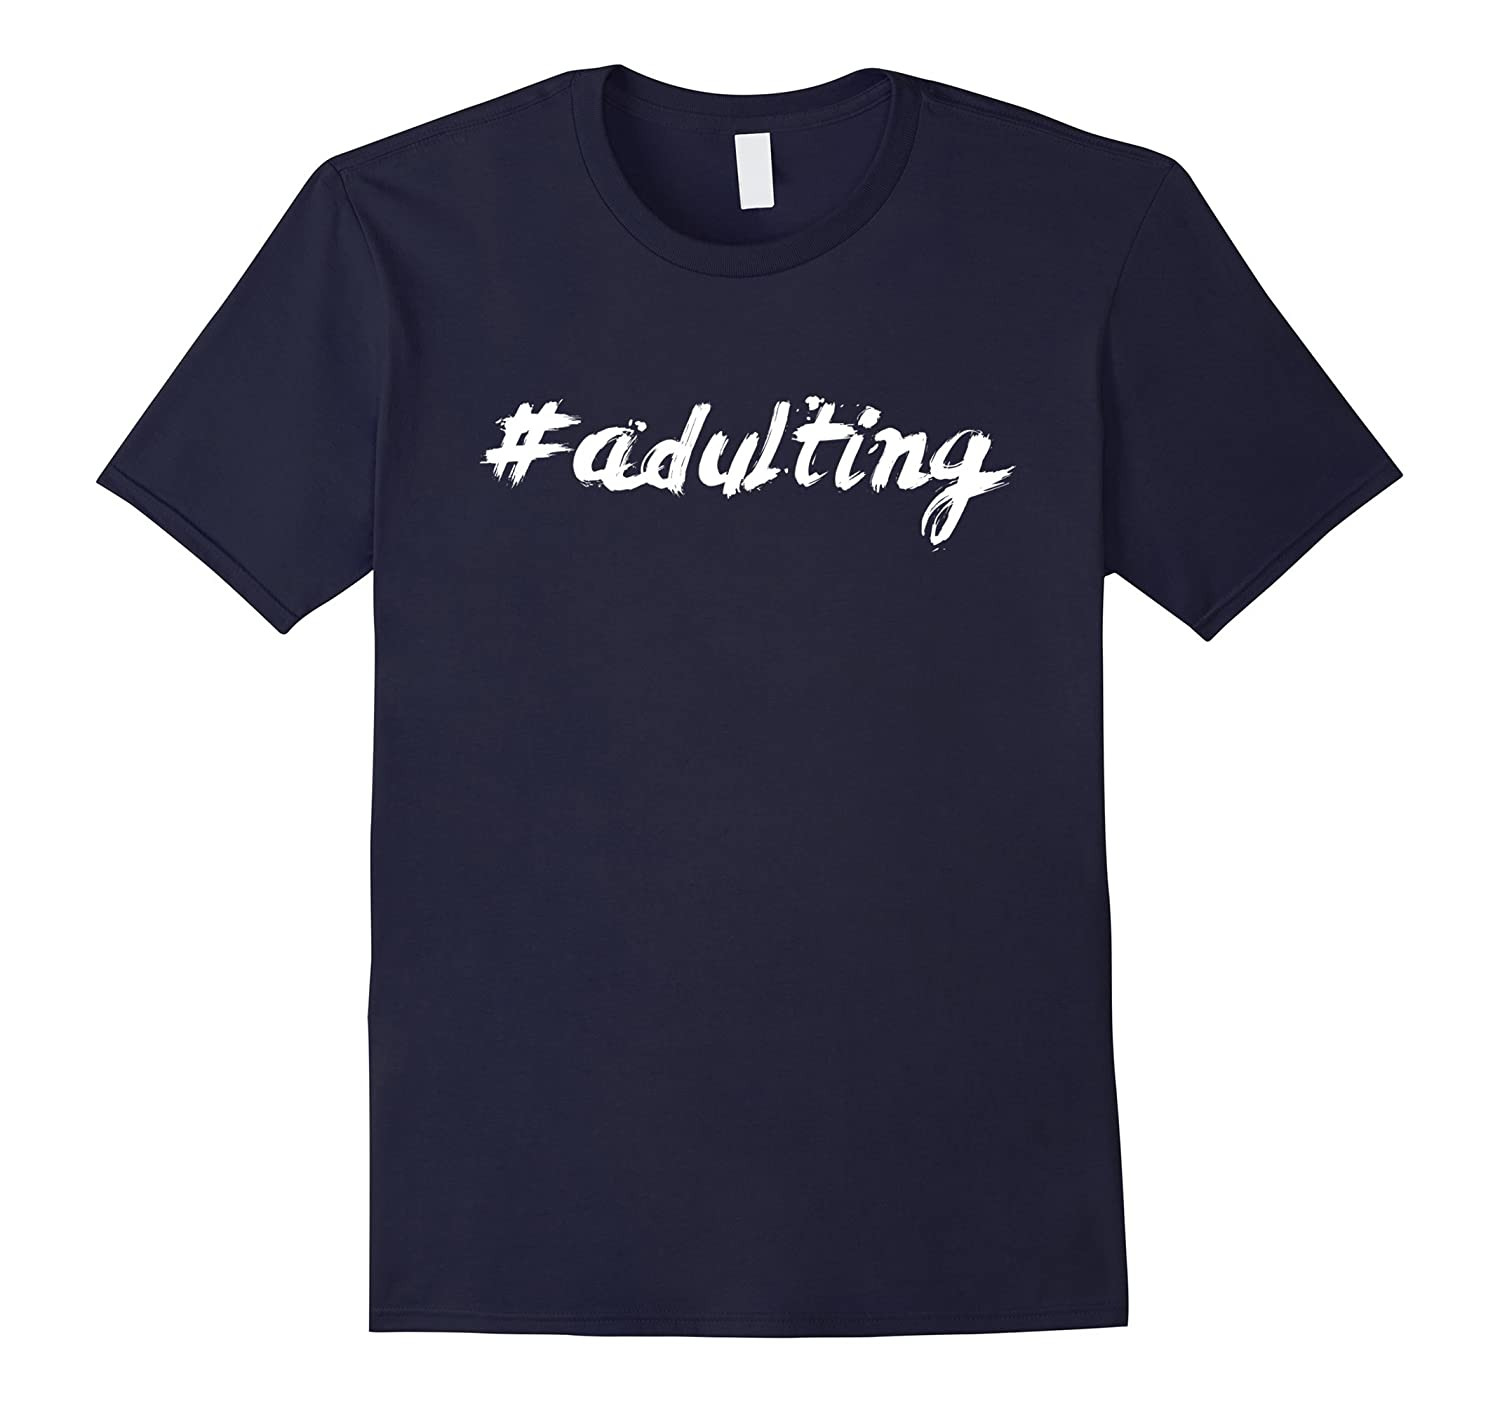 #adulting humorous funny hashtag shirts for men women-CL